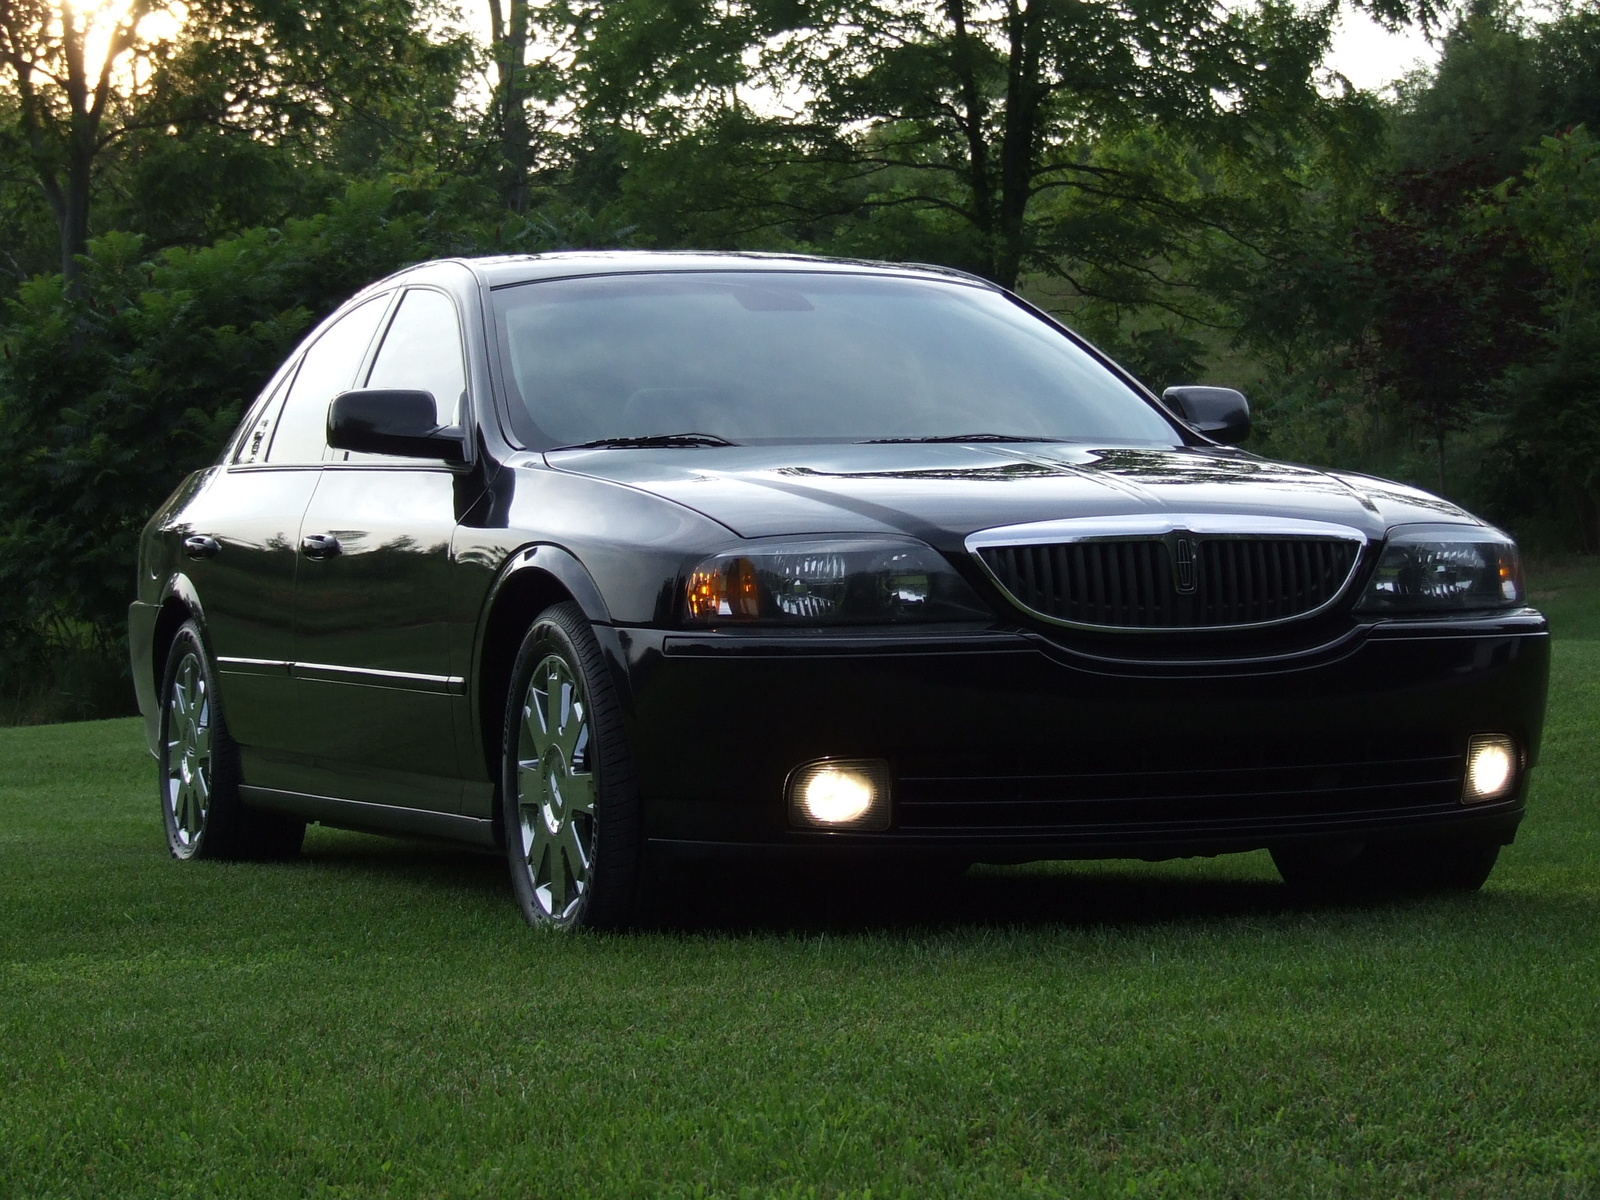 2003 Lincoln Ls #5